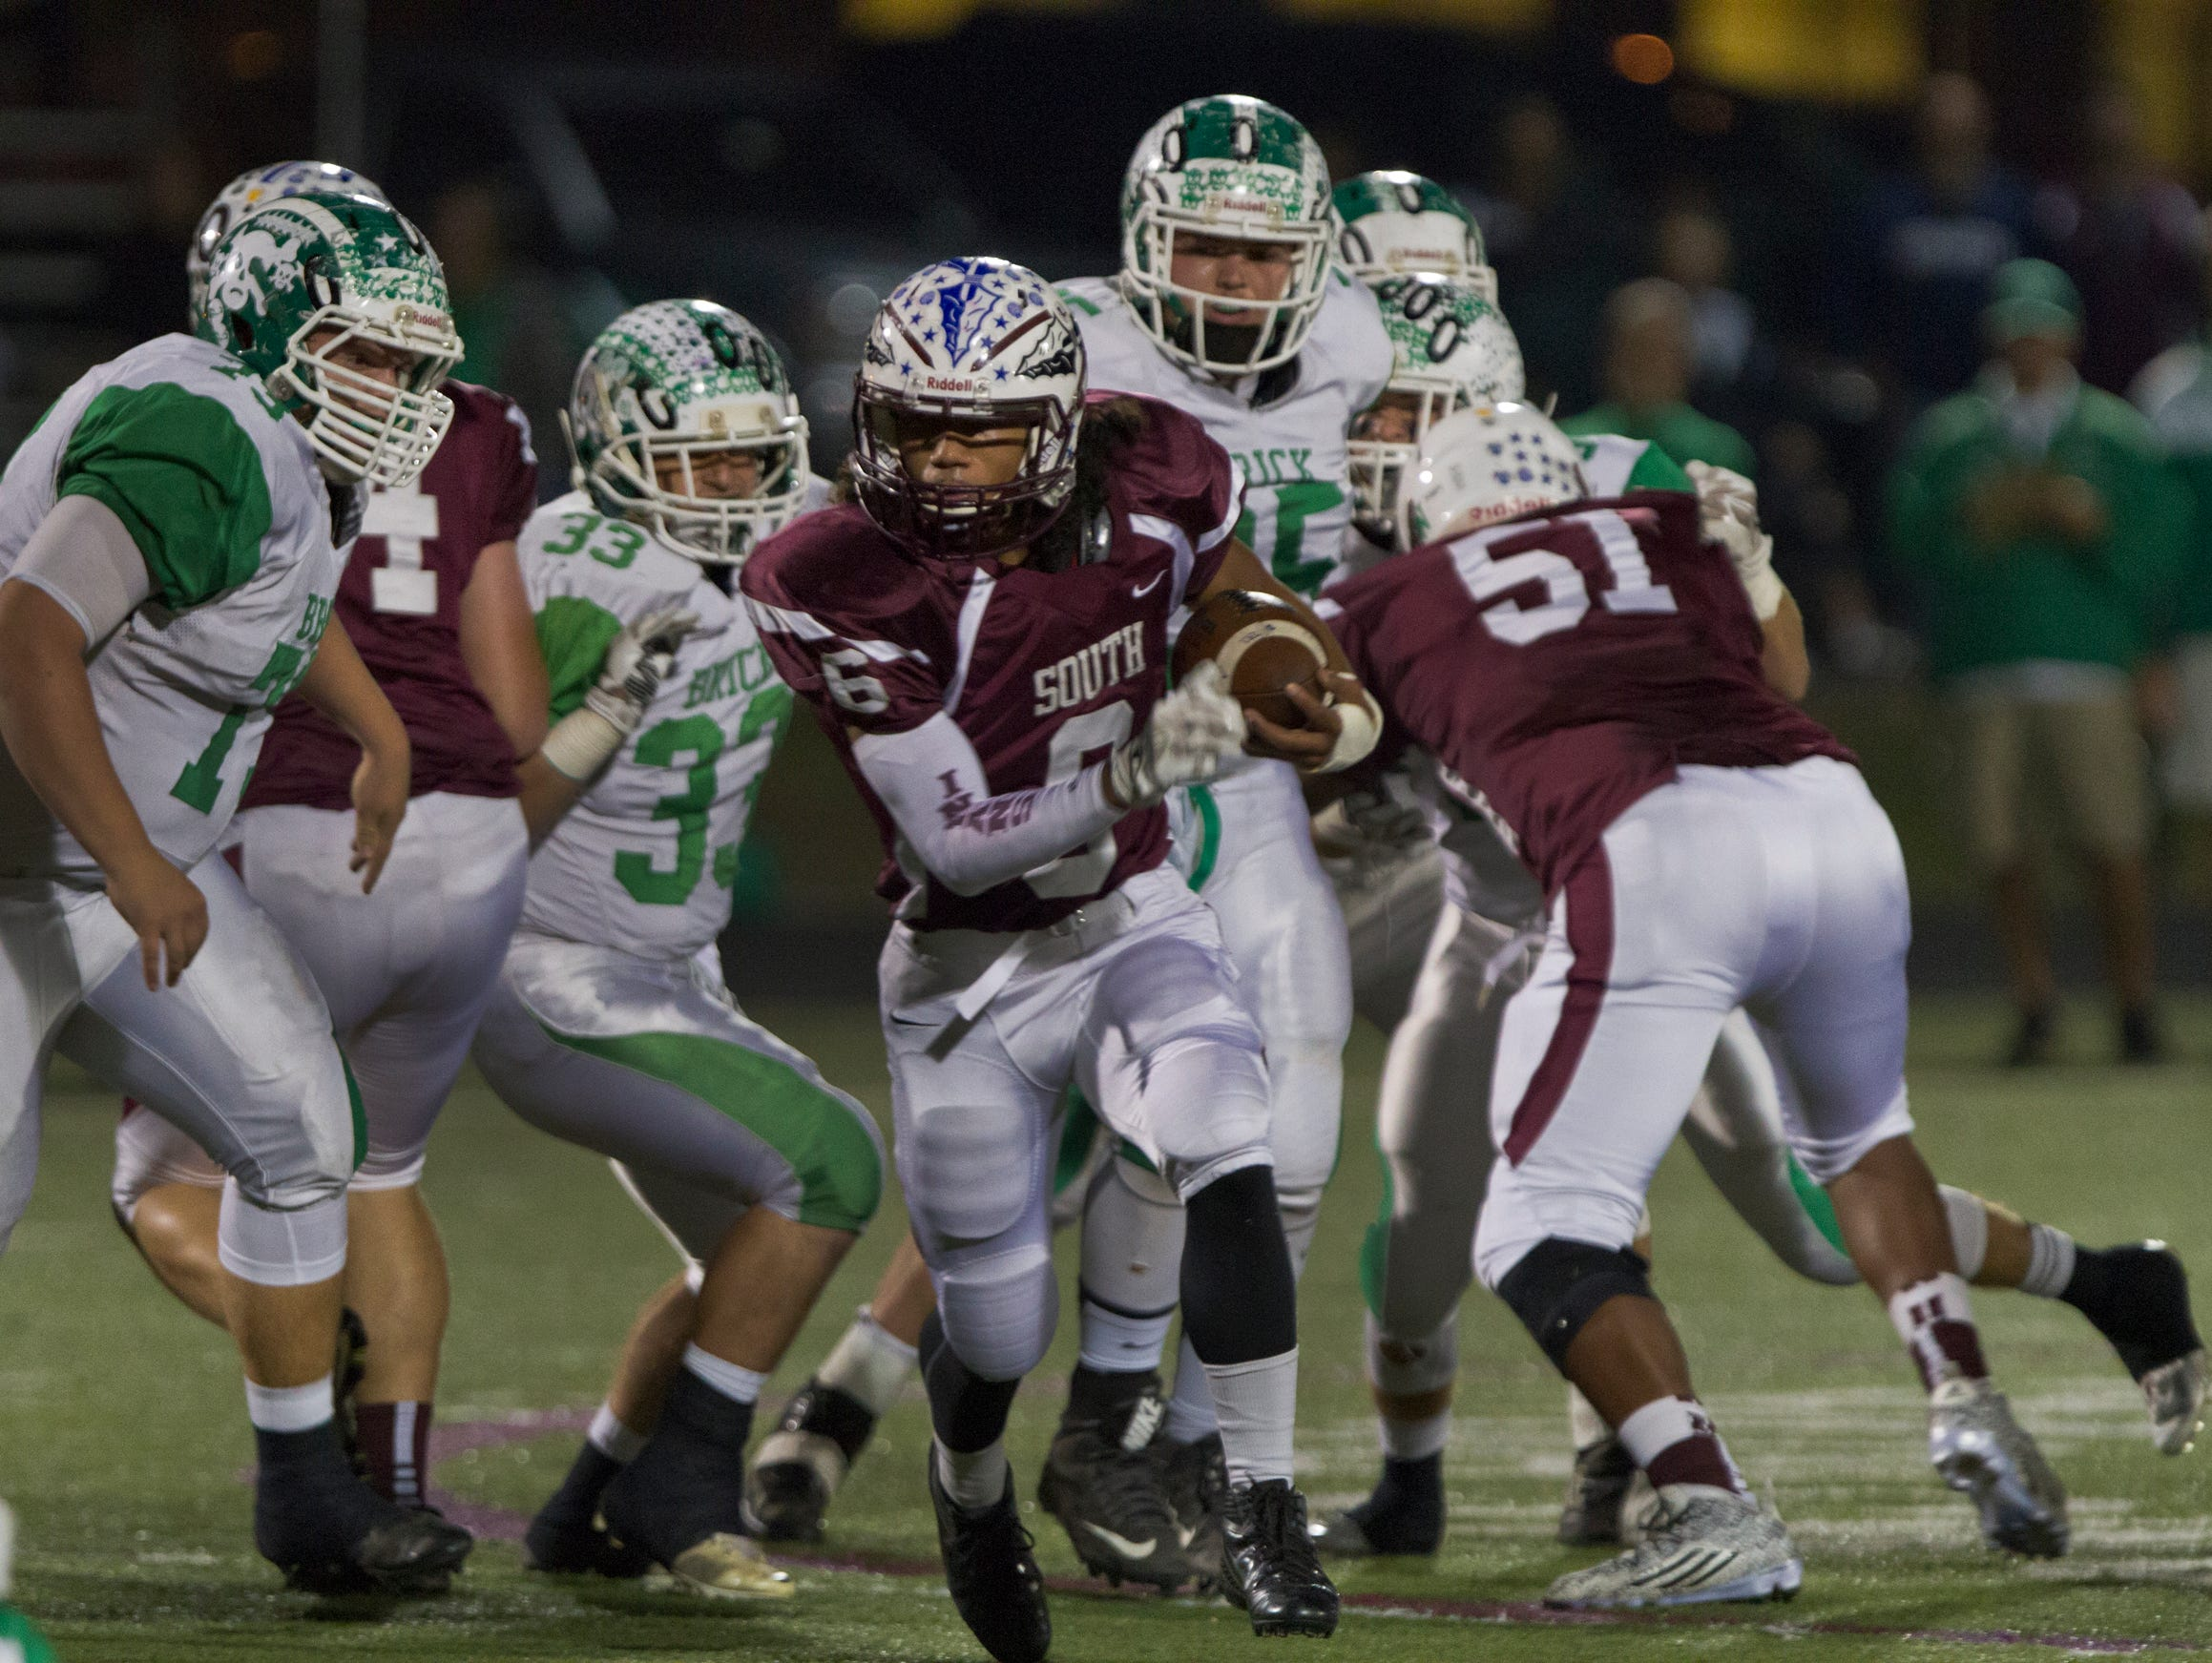 Toms River South's Dashaun Alexnder finds running room through the left side during early action in Brick football vs Toms River South on November 6, 2015 in Toms River NJ.